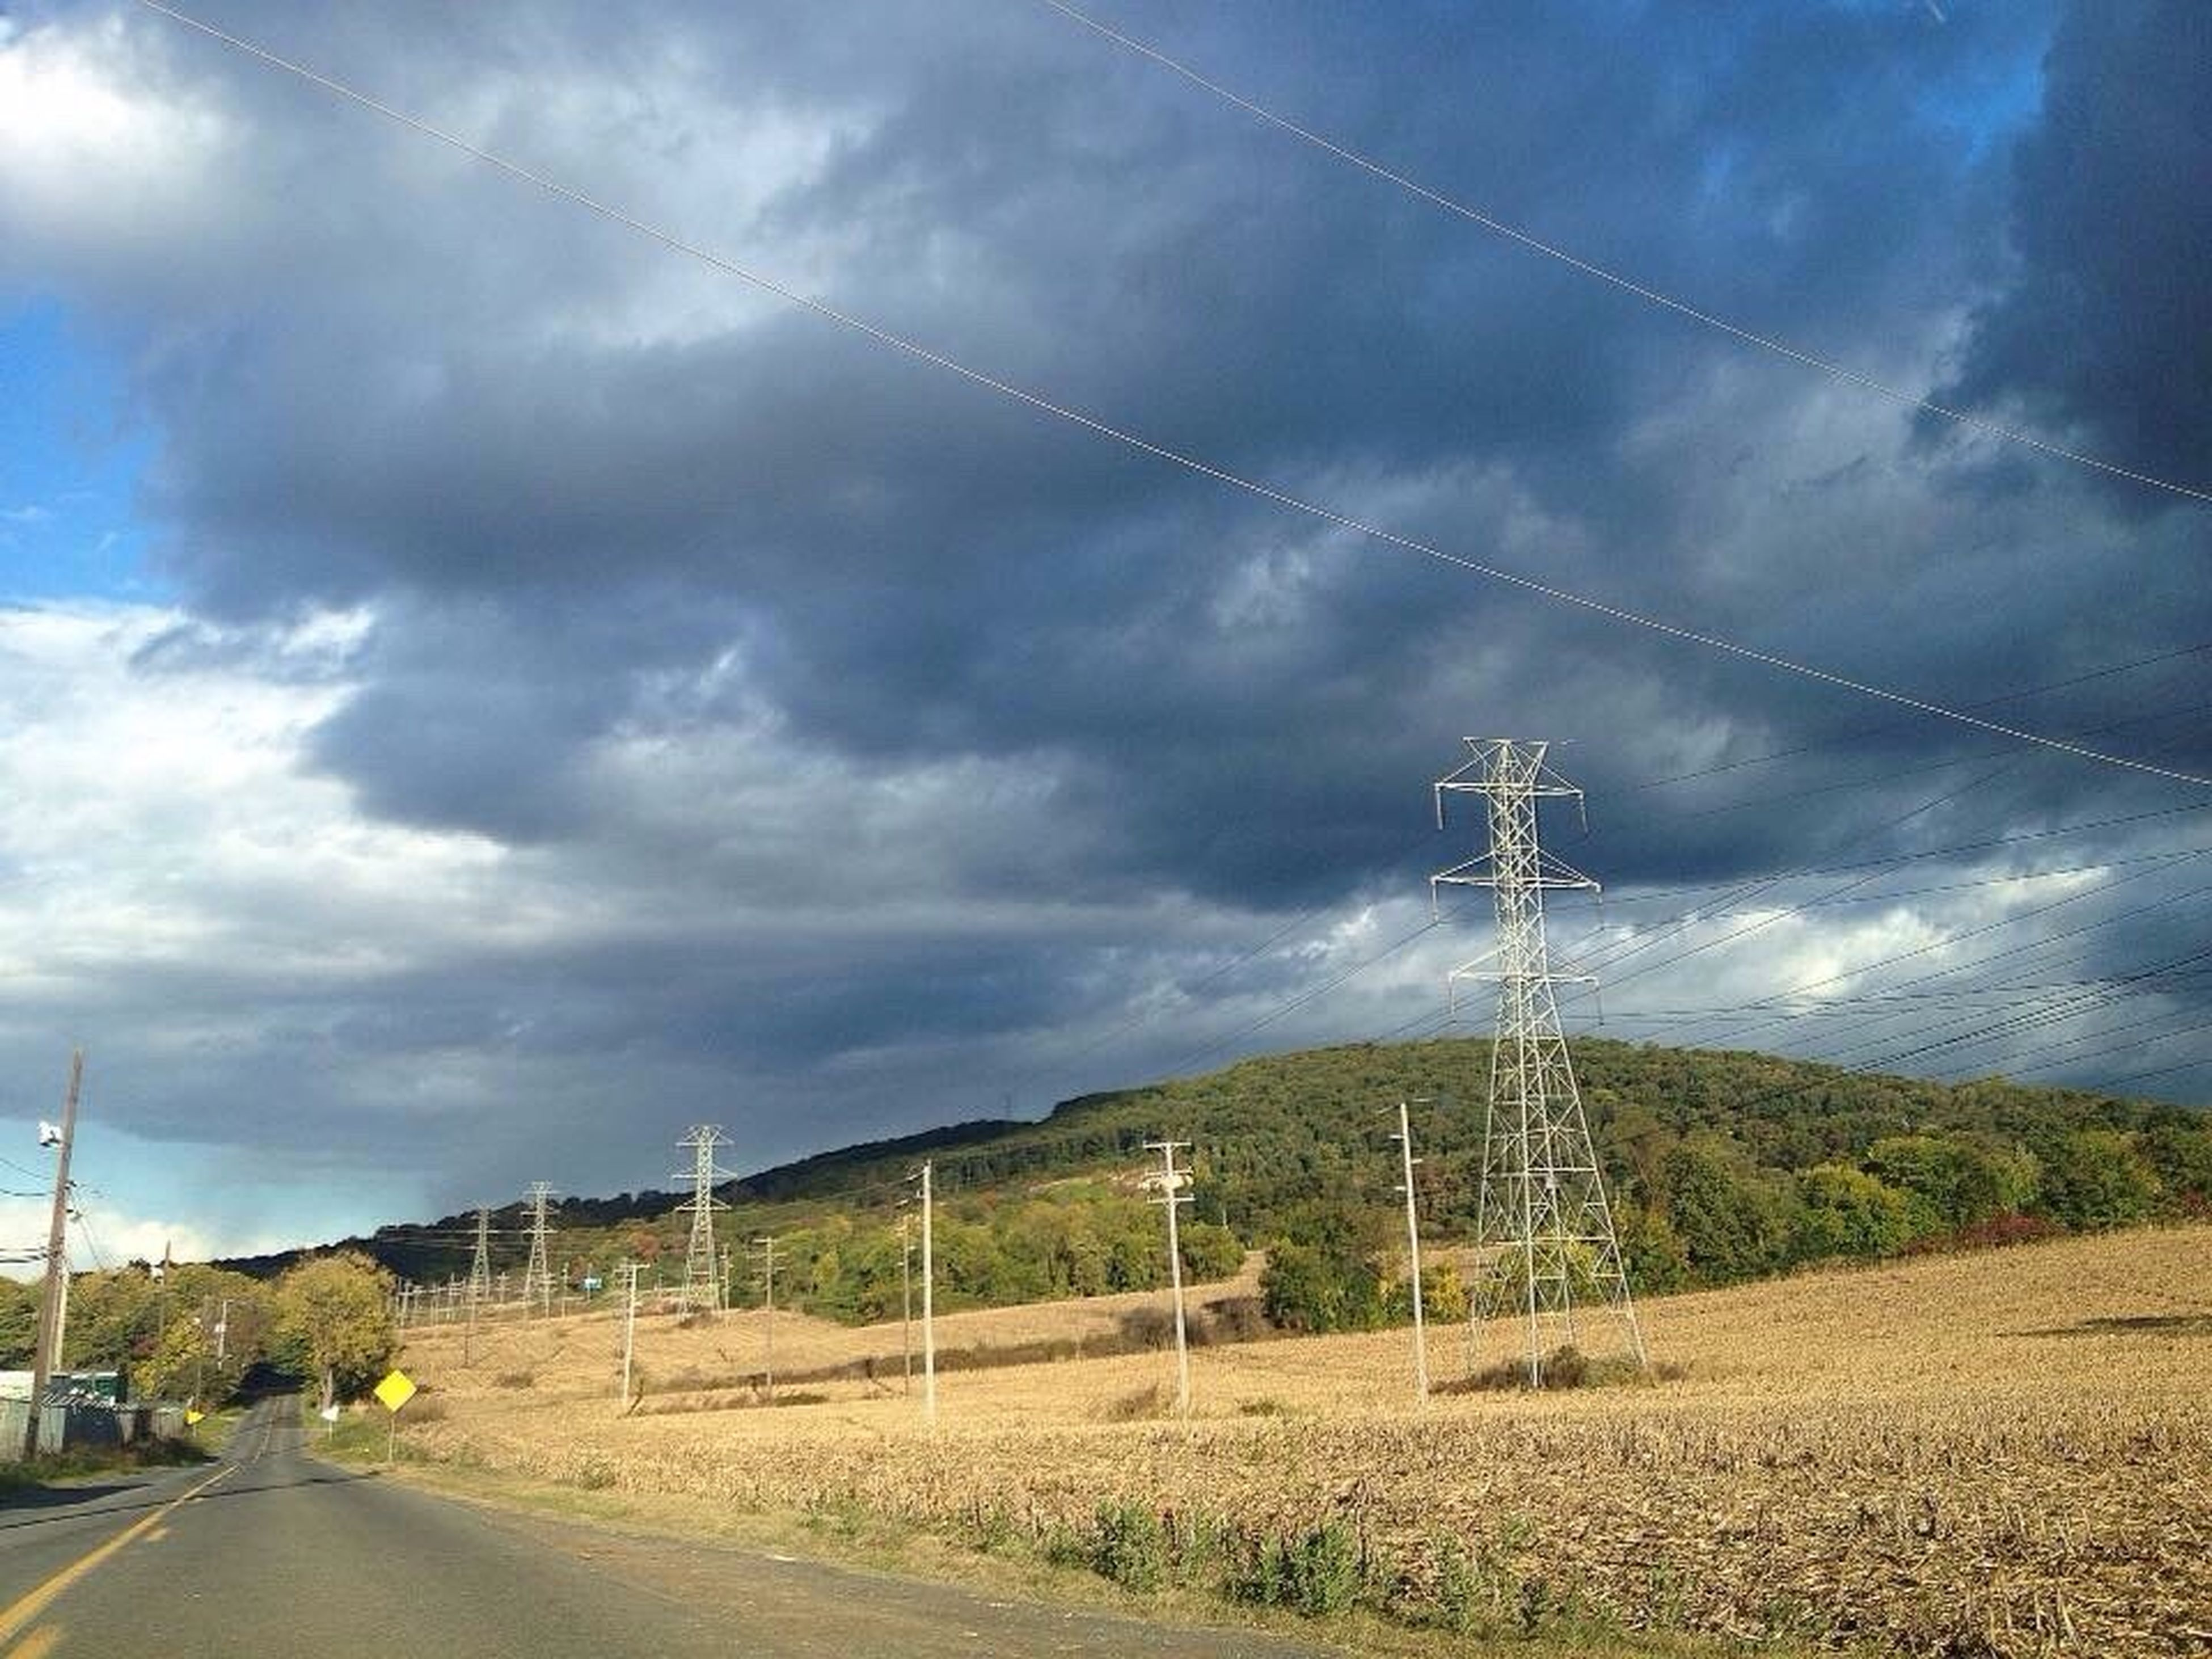 cable, electricity pylon, electricity, connection, power line, power supply, sky, day, no people, fuel and power generation, landscape, field, nature, tranquility, tranquil scene, cloud - sky, outdoors, transportation, scenics, tree, technology, telephone line, beauty in nature, vapor trail